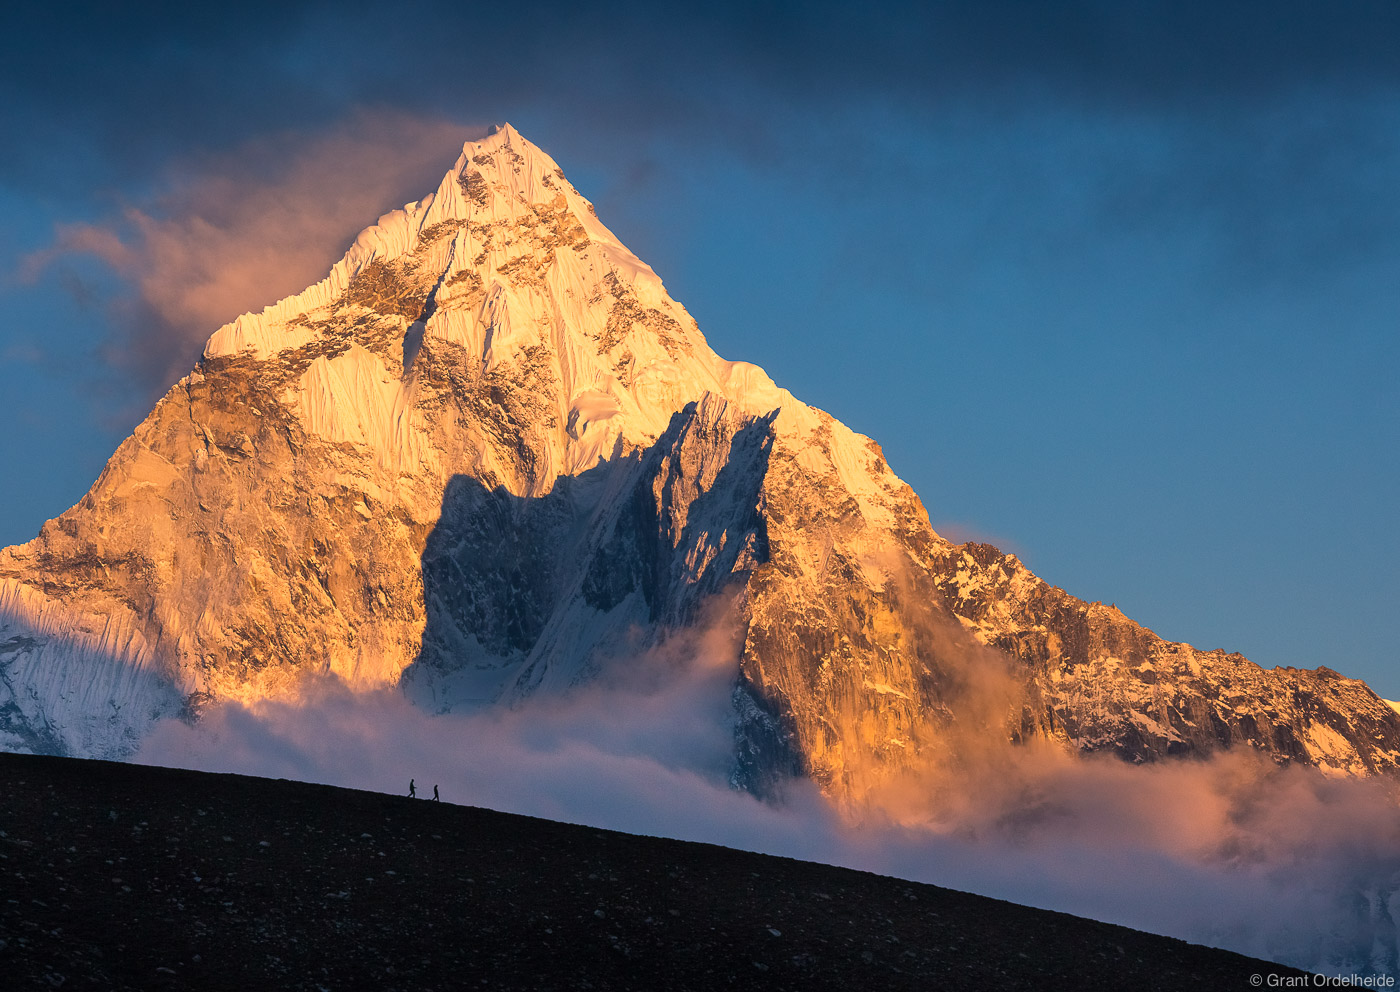 Two figures shrink in front of the massive Ama Dablam in Nepal's Everest Region.